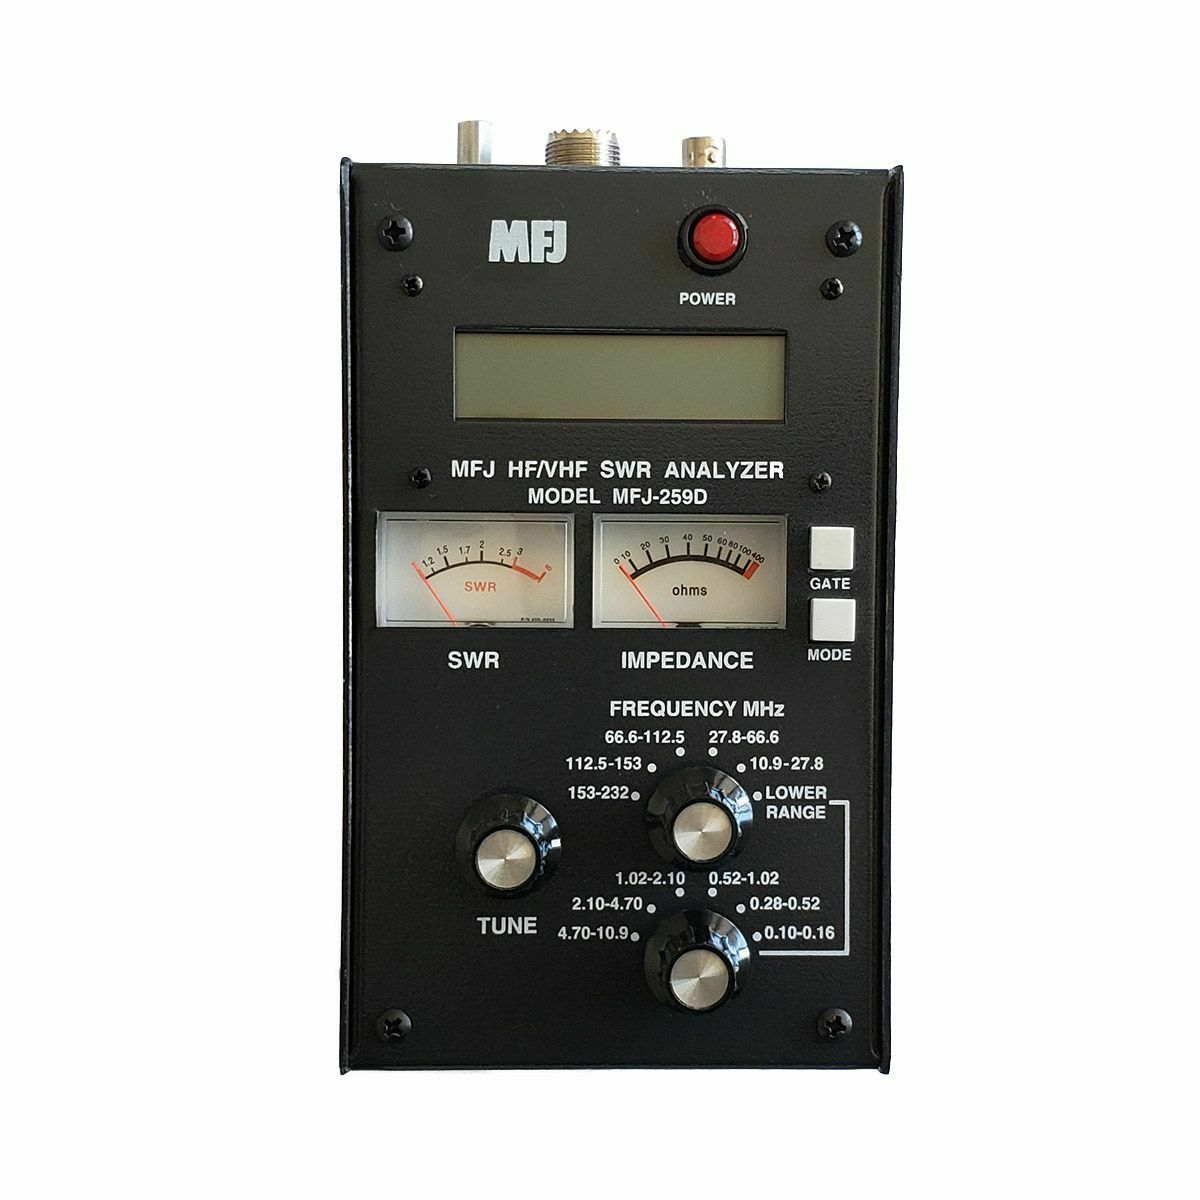 MFJ-259D HF/VHF (100-160KHz, 280KHz-232MHz) SWR Antenna Analyzer. Buy it now for 319.95